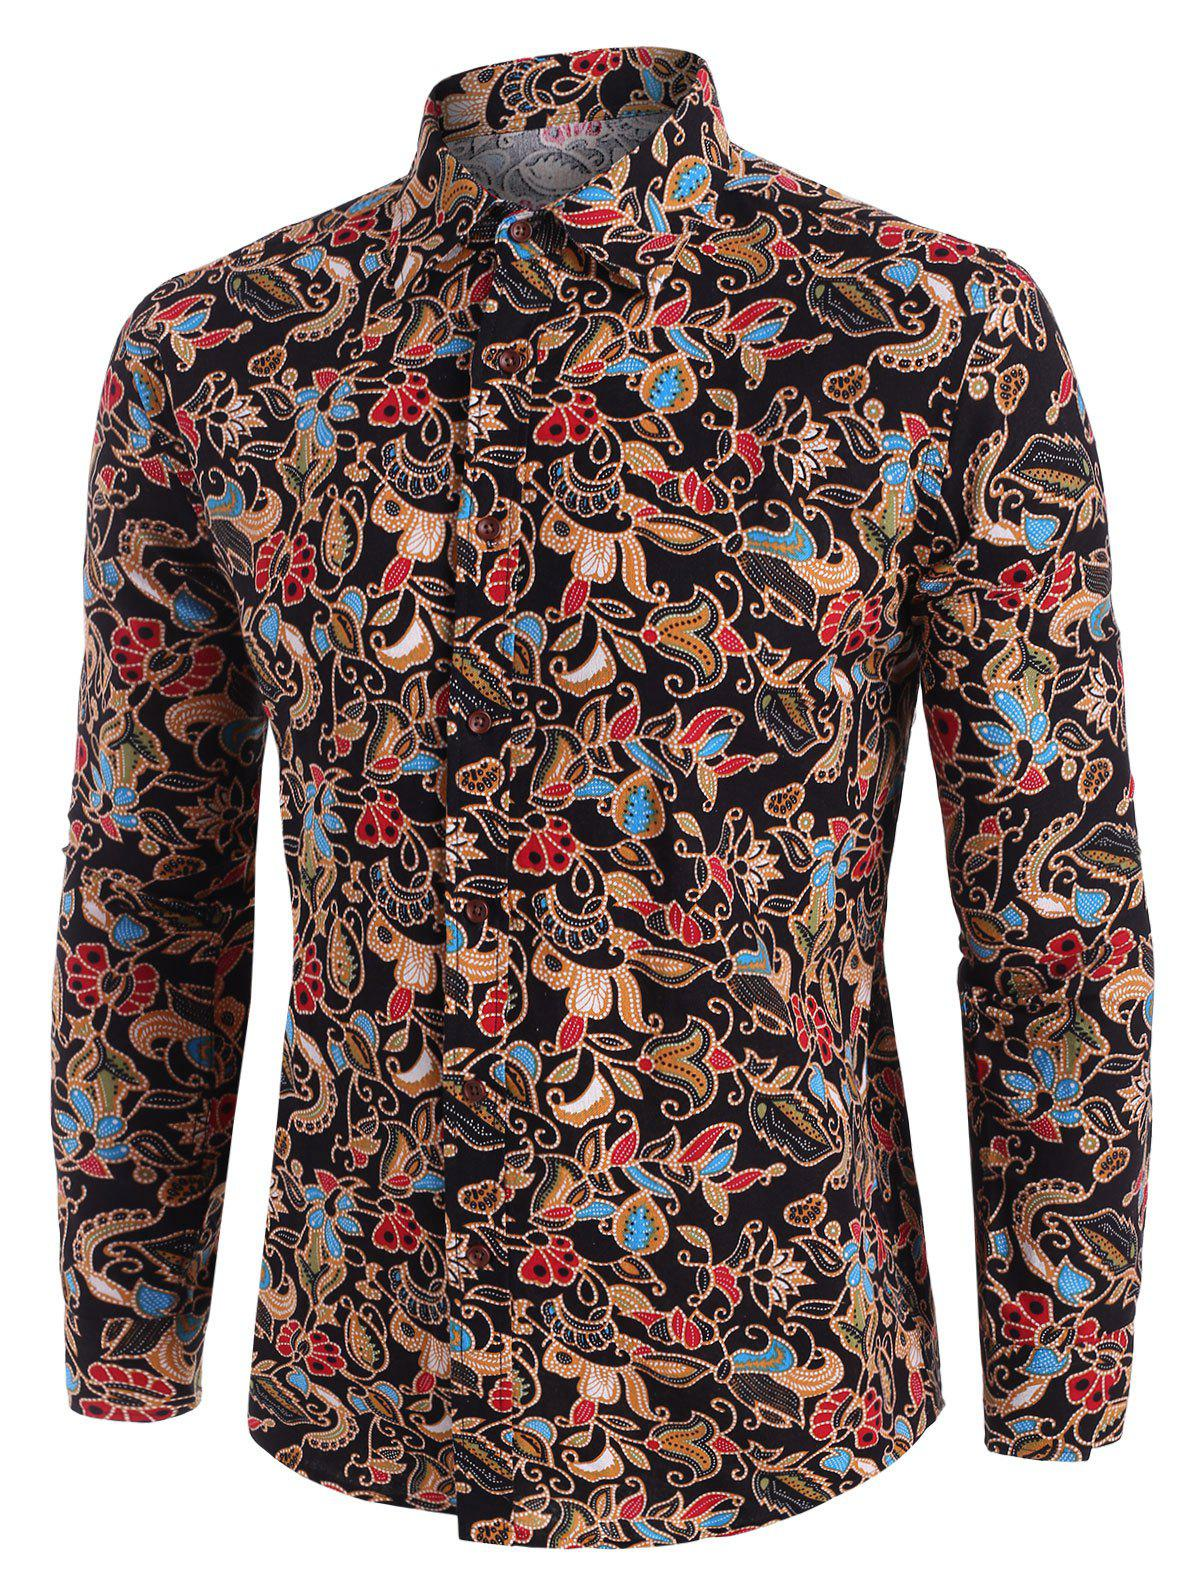 Floral Print Ethnic Style Long Sleeve Shirt - multicolor 2XL